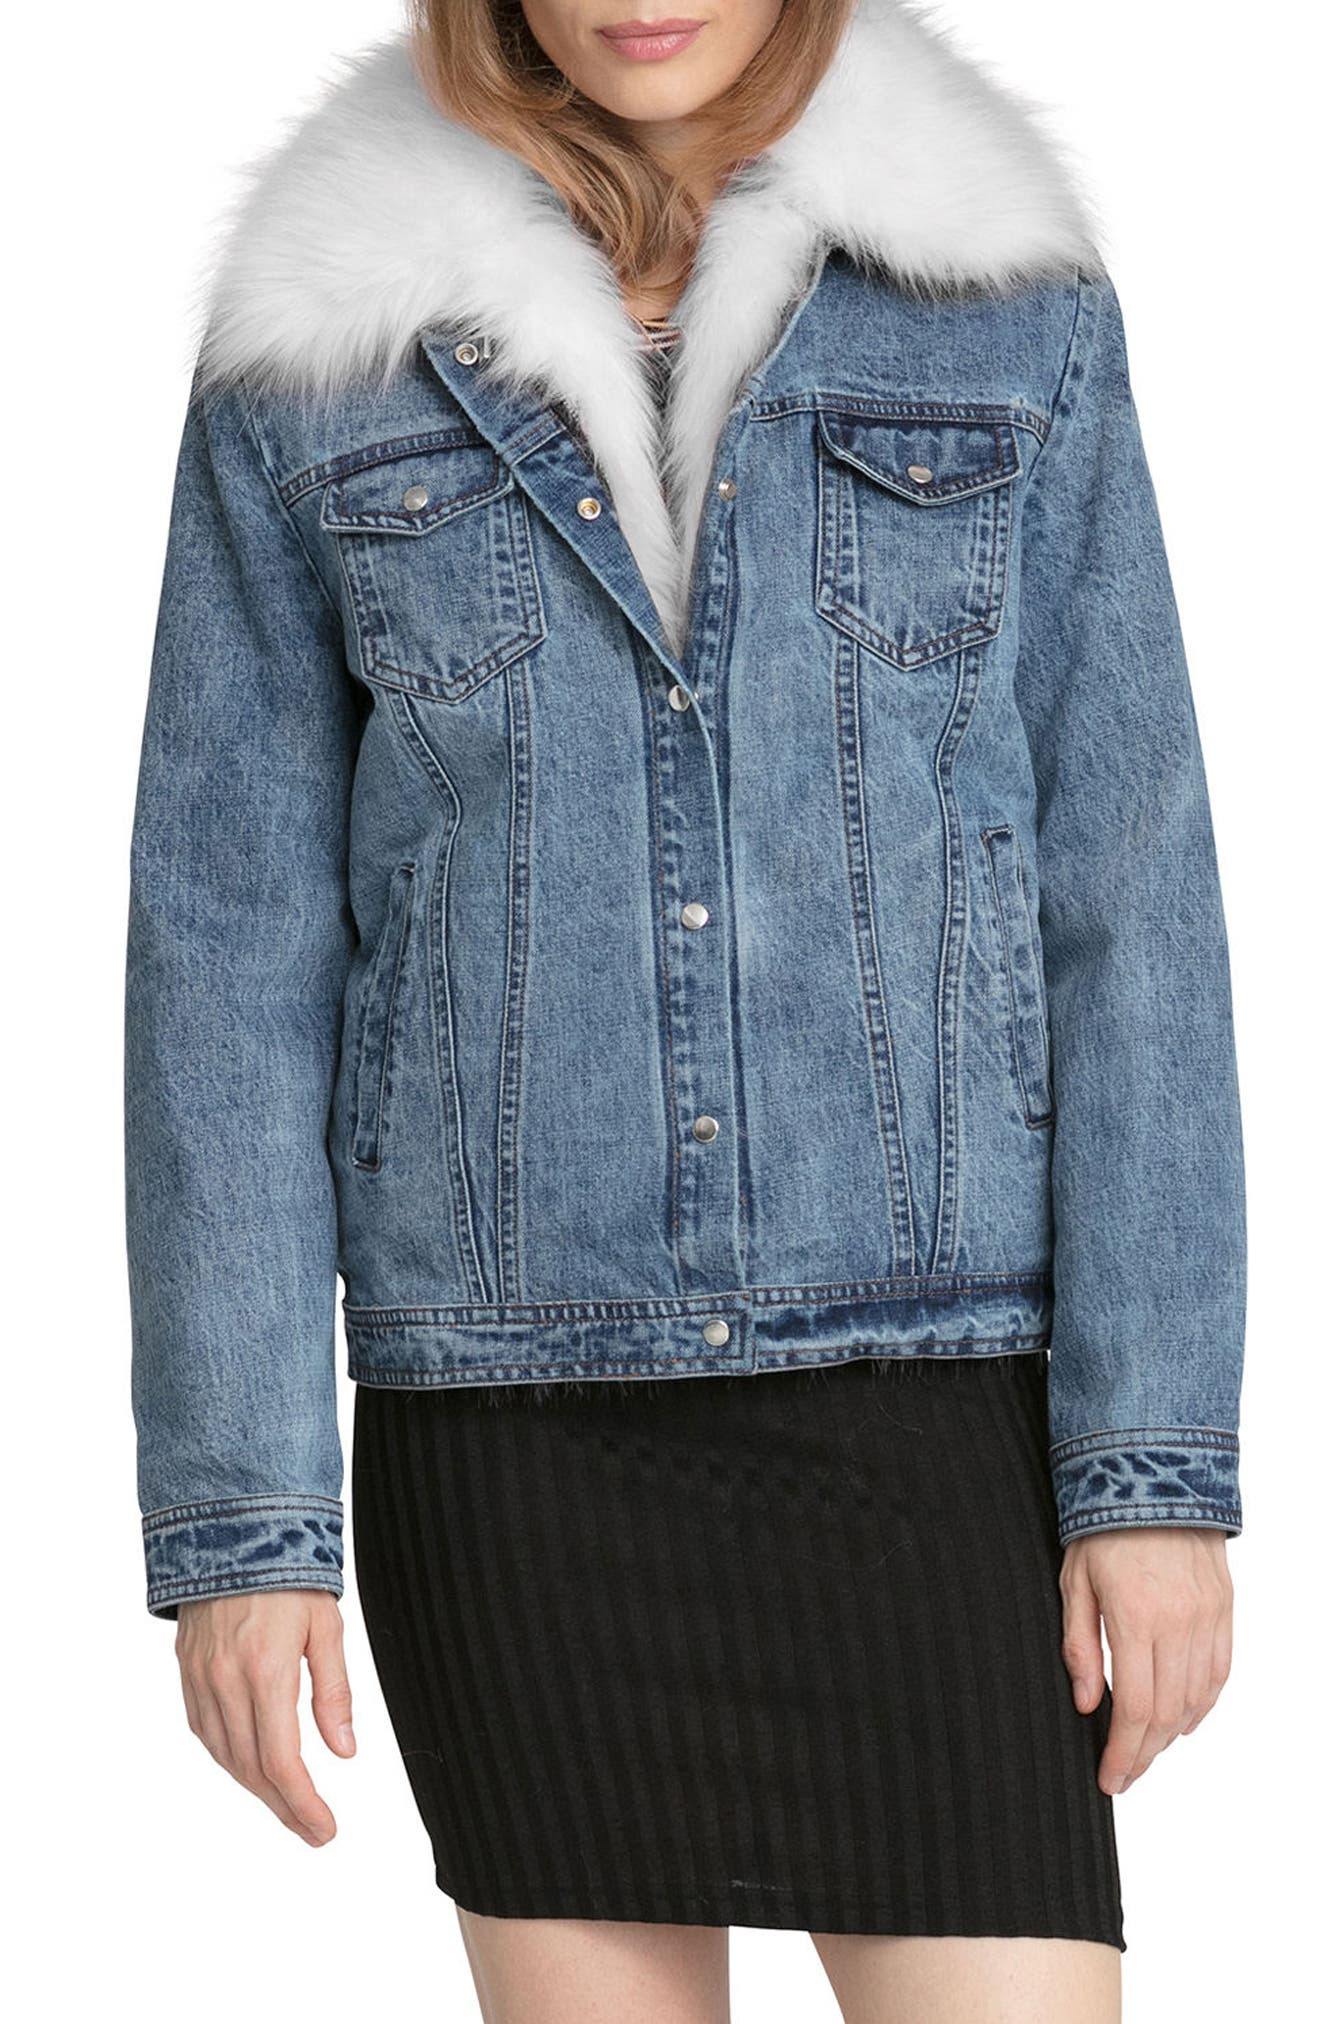 Alternate Image 1 Selected - Avec Les Filles Denim Trucker Jacket with Removable Faux Fur Trim